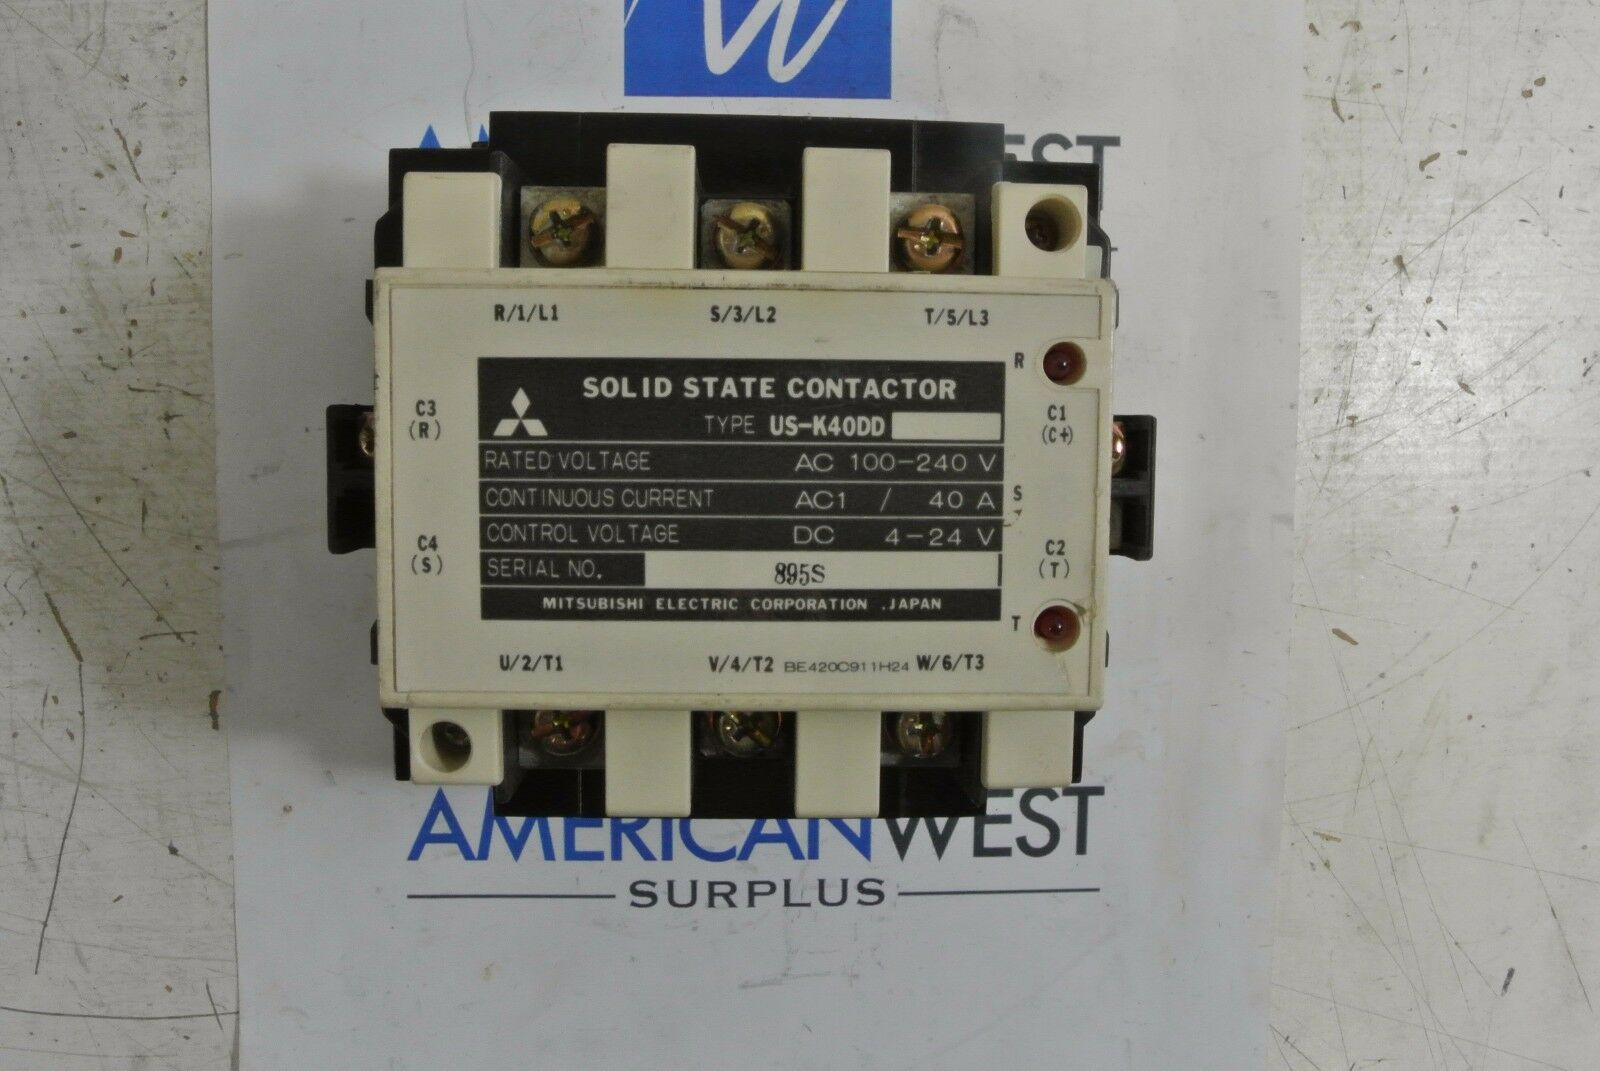 Mitsubishi Electric Corp Solid State Contactor Us-k40dd 100-240v 40a ...